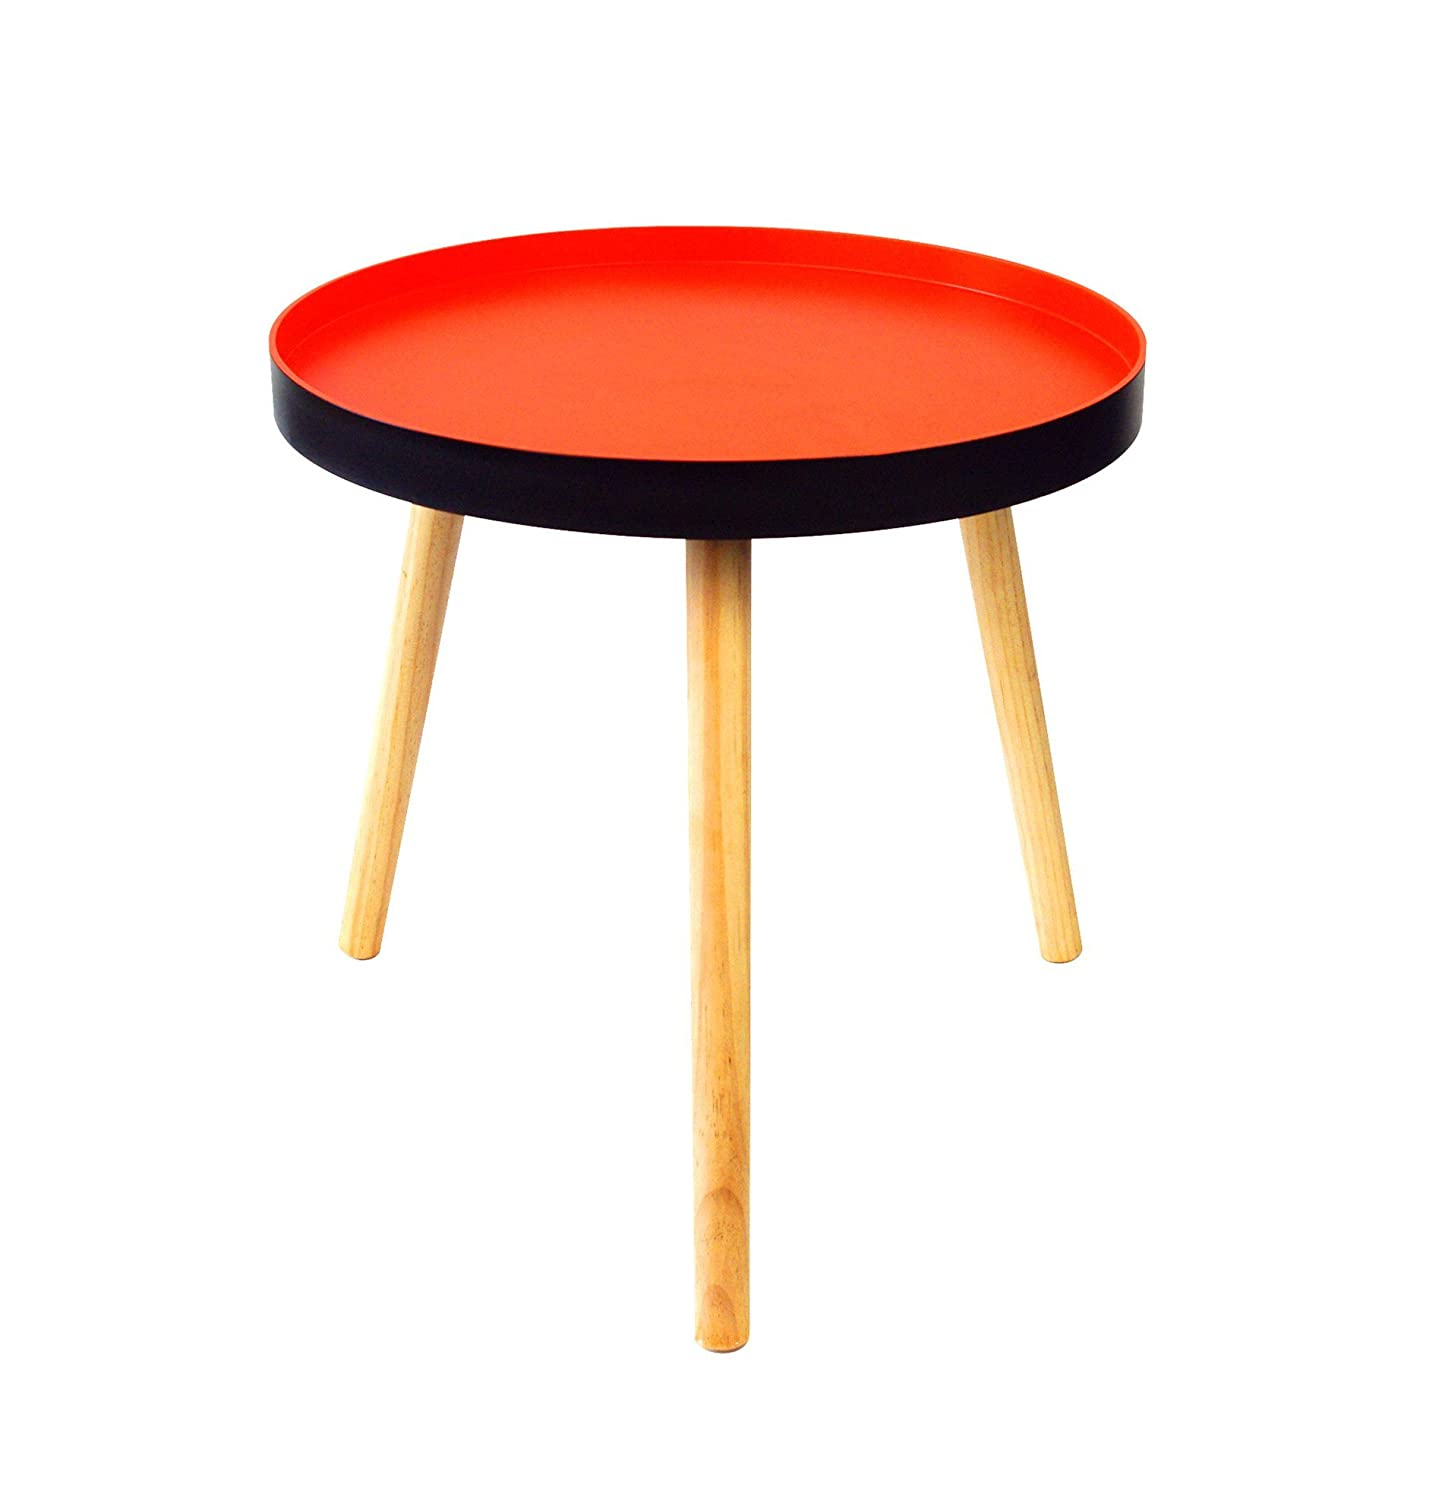 Fine Side Plant Coffee Table Tray Table Bedside Table Fyt2002 Black Orange Gamerscity Chair Design For Home Gamerscityorg